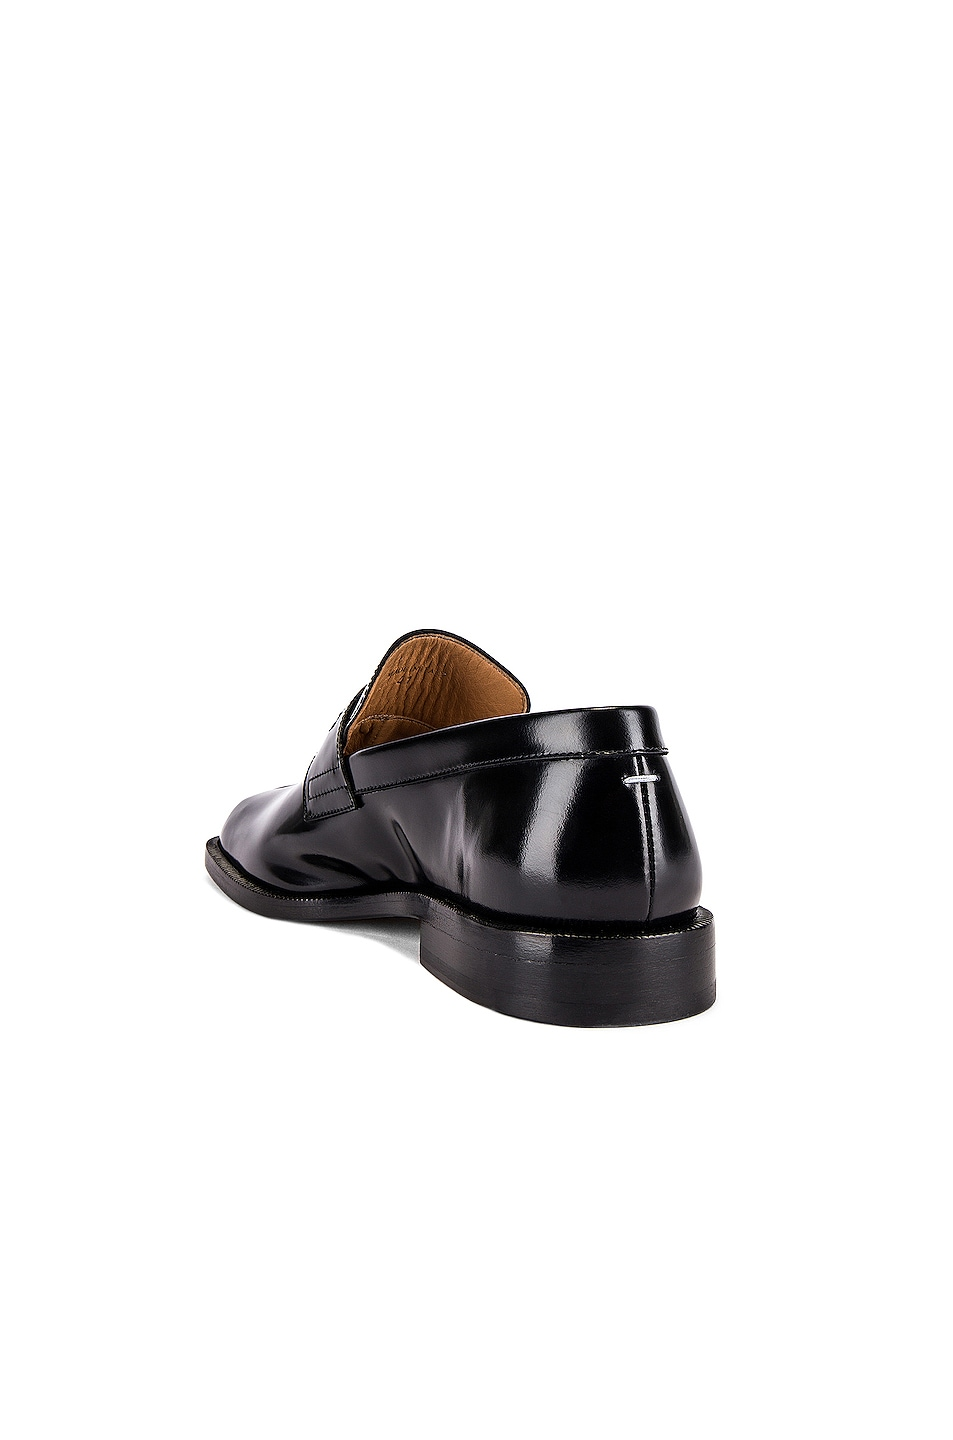 Image 3 of Maison Margiela Tabi Advocate Loafer in Black